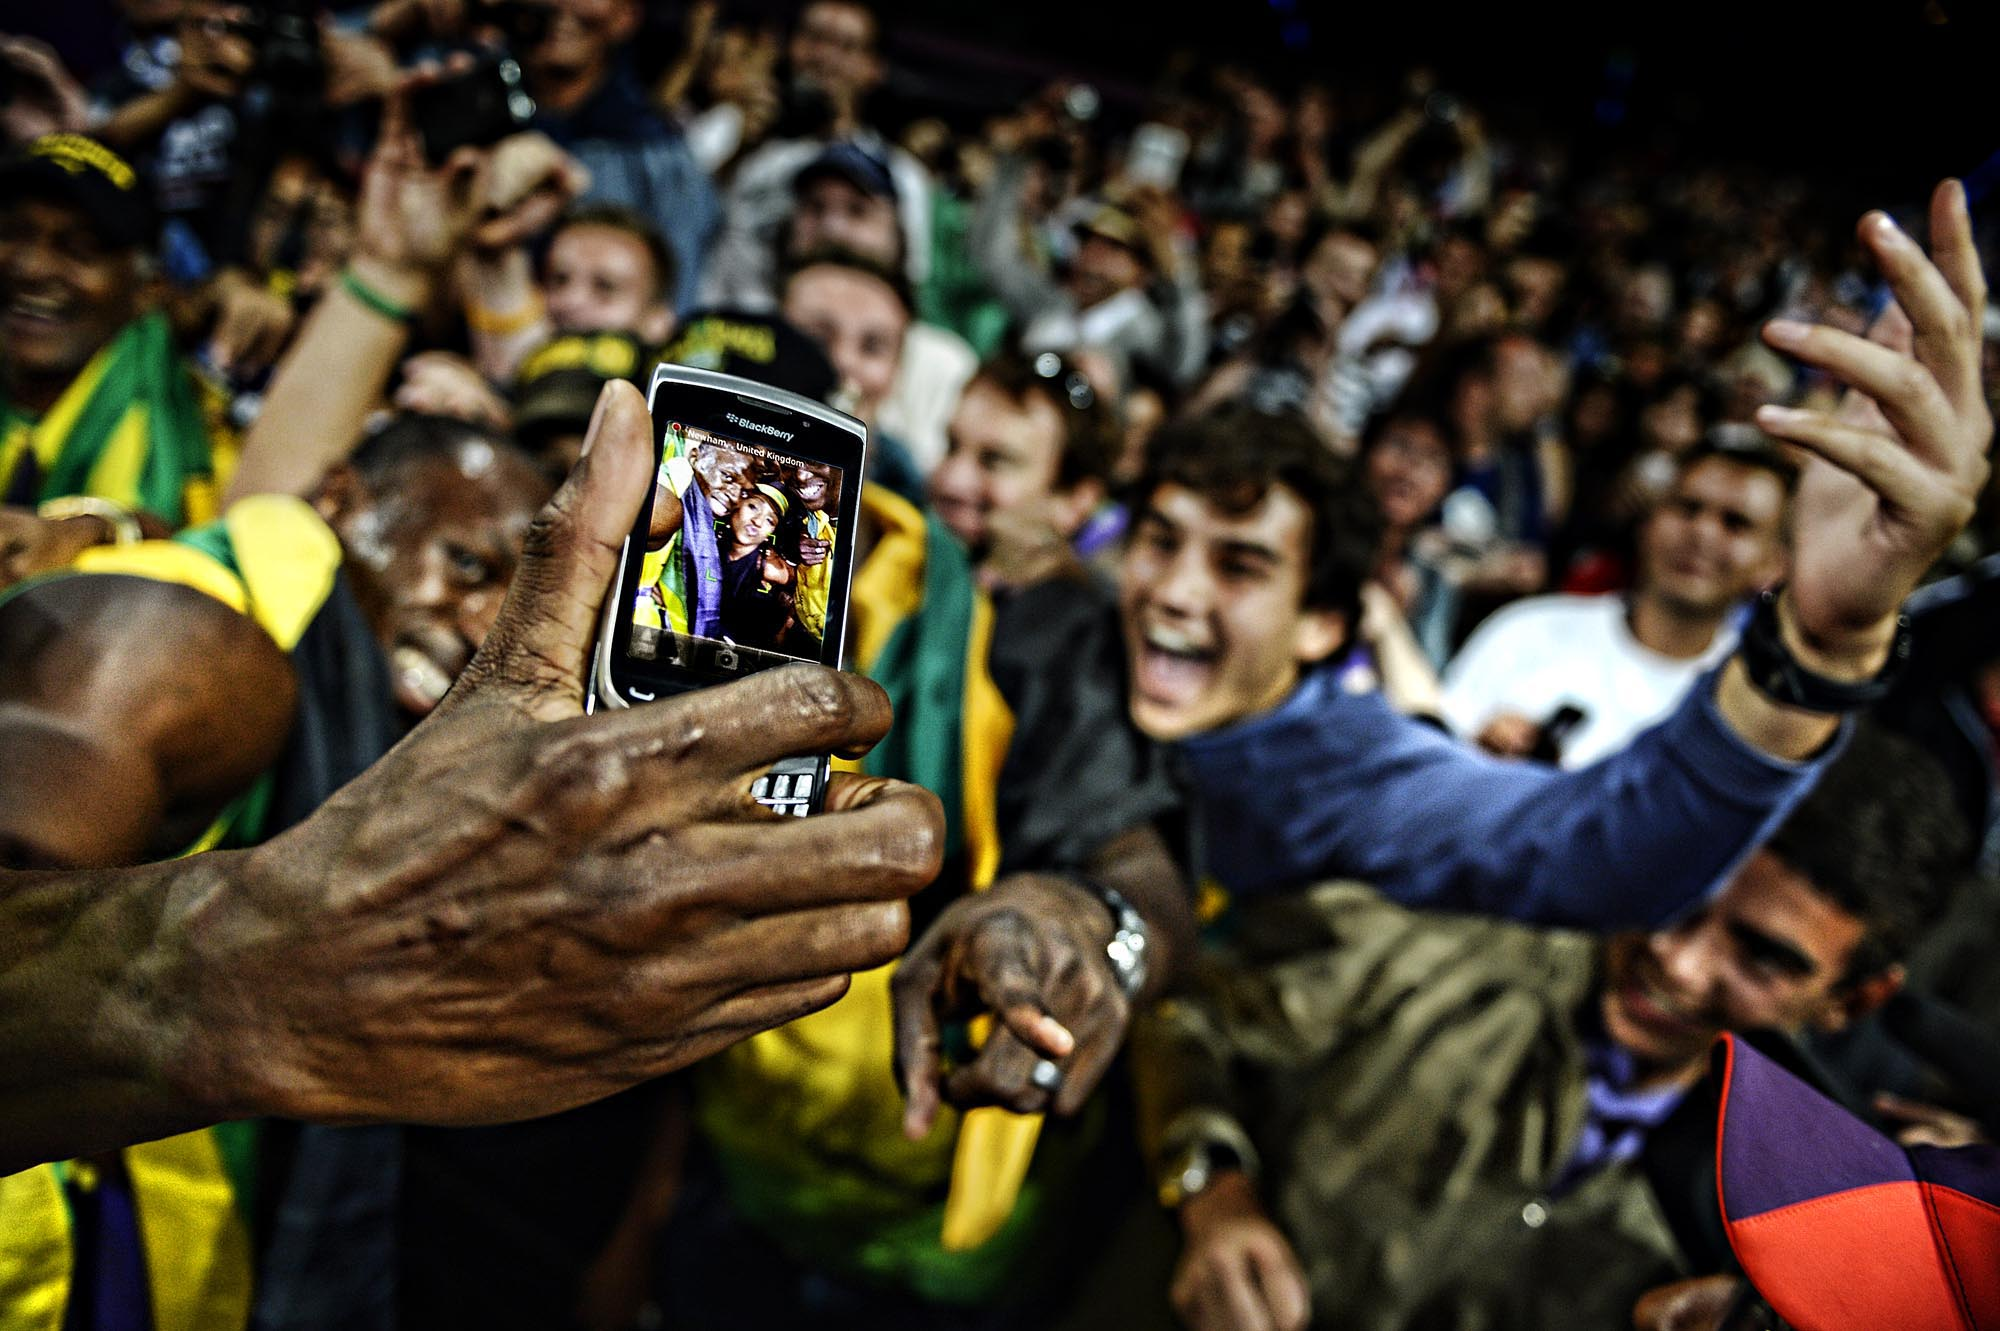 2 usain bolt selfie - best sports selfies